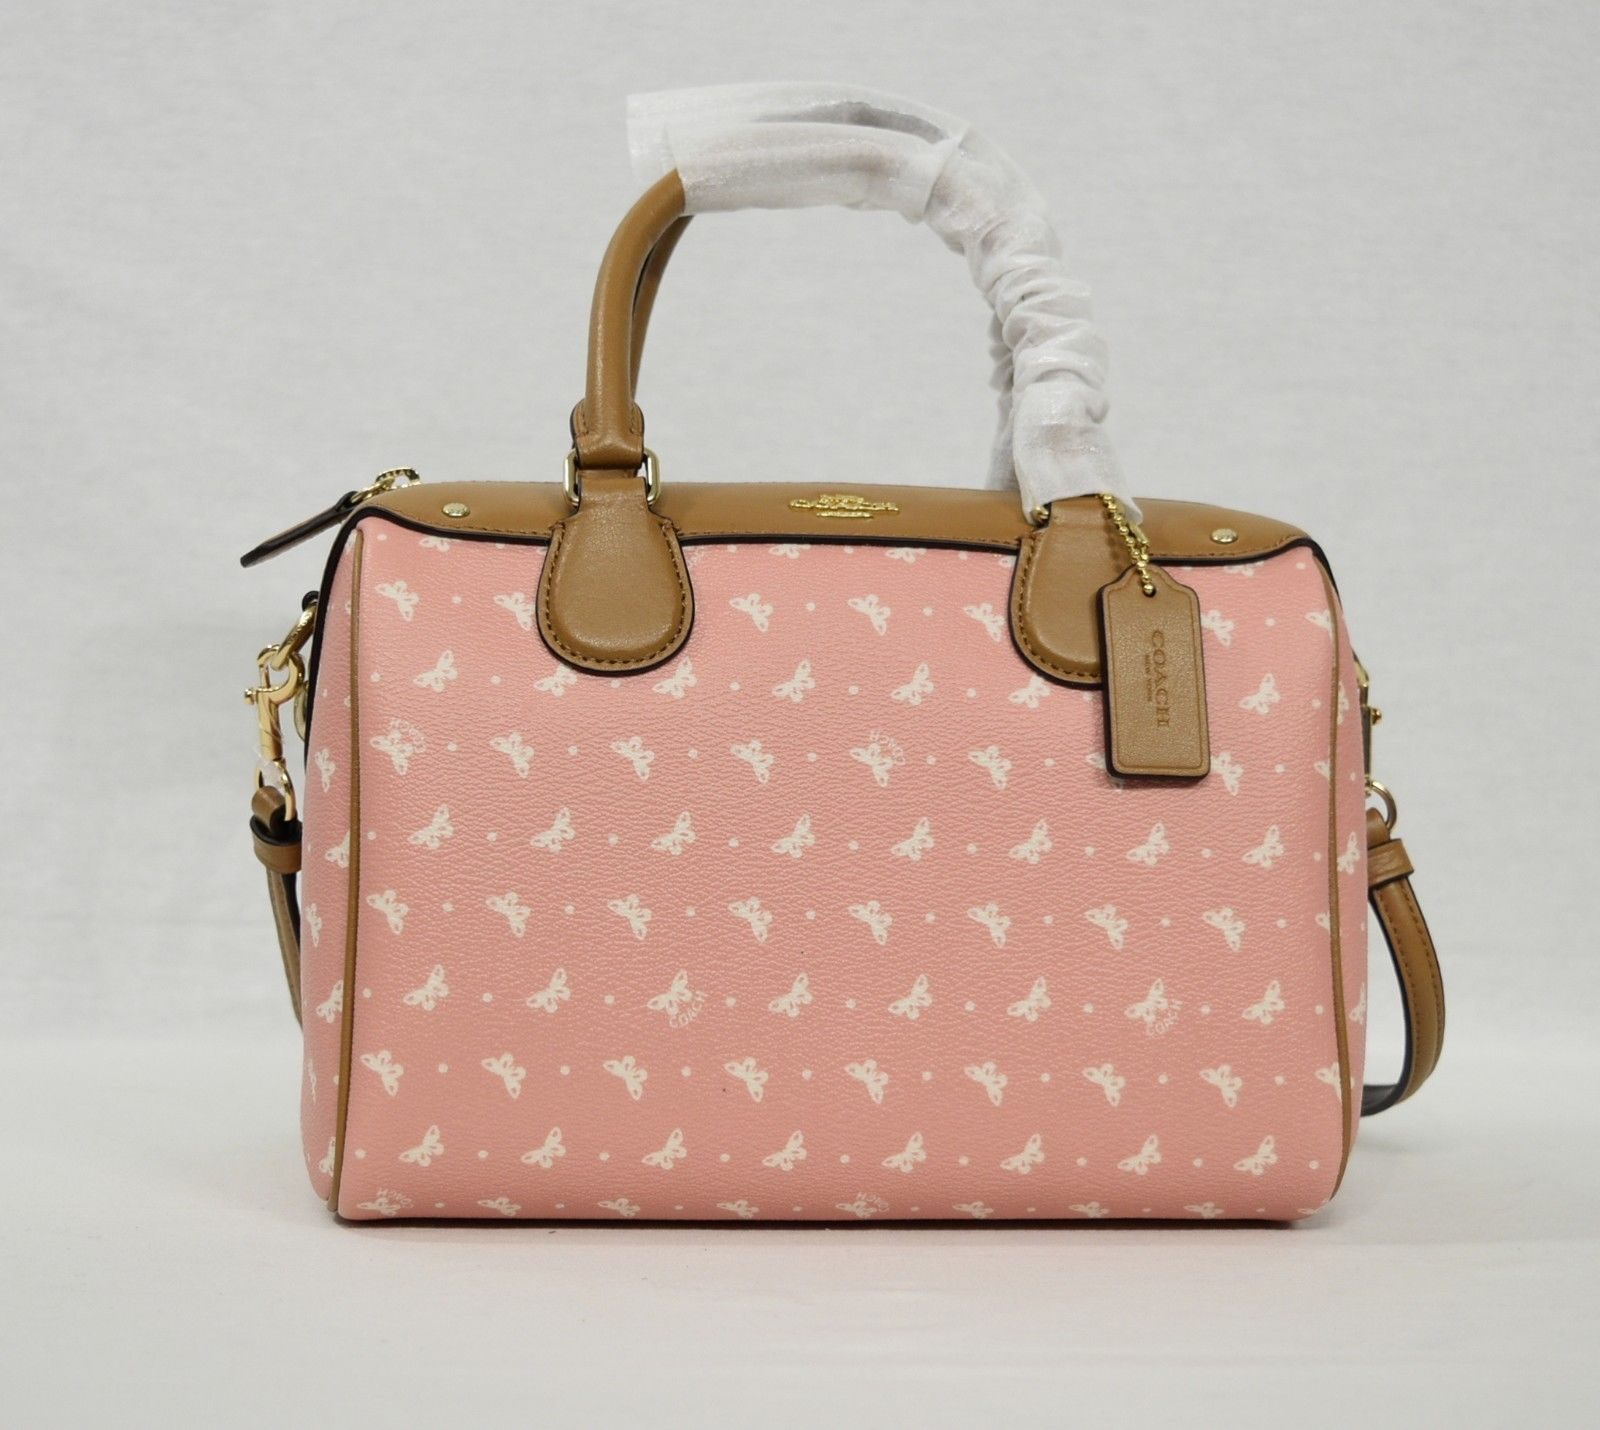 336c7301e903 NWT Coach F29806 Mini Bennett Satchel With Butterfly Dot Print in Blush  Chalk